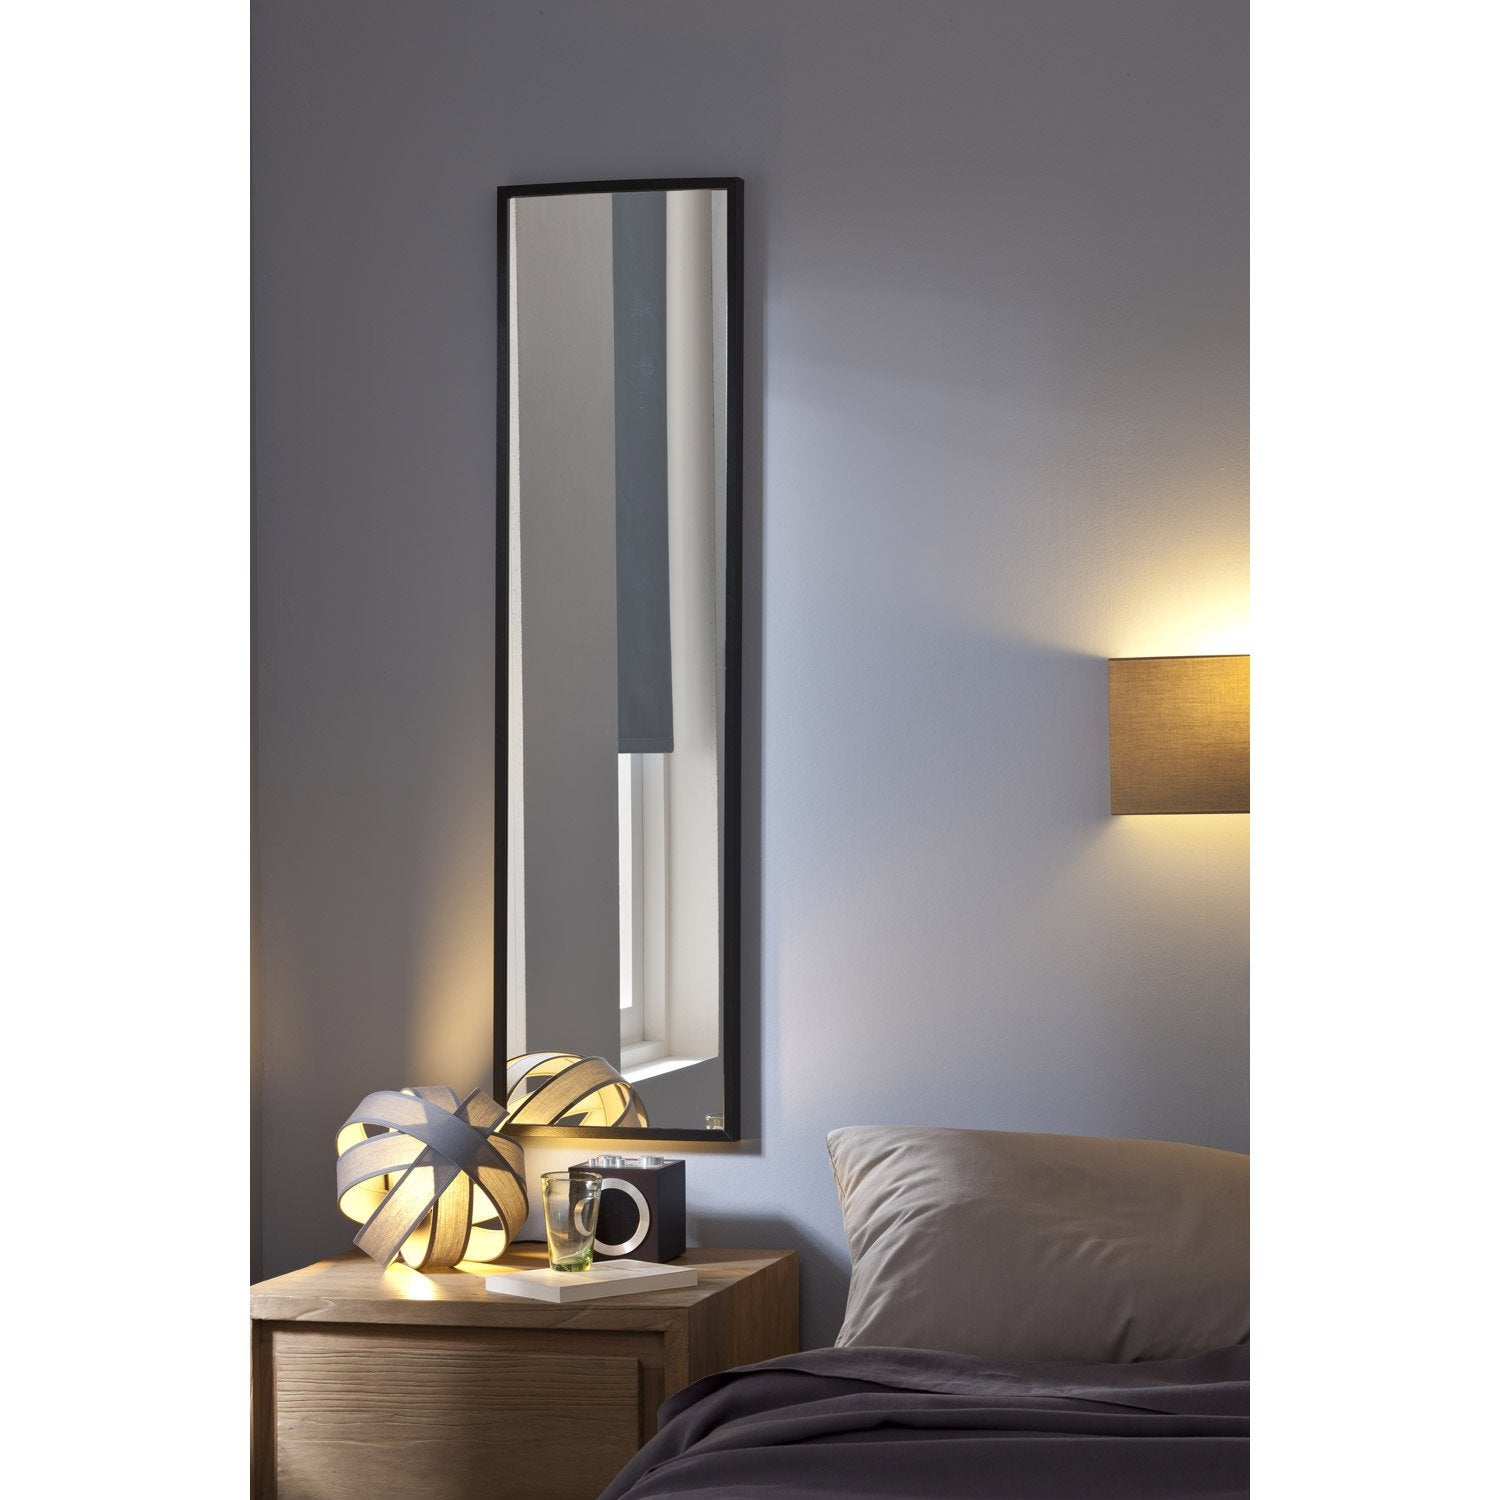 miroir lario inspire argent x cm leroy merlin. Black Bedroom Furniture Sets. Home Design Ideas